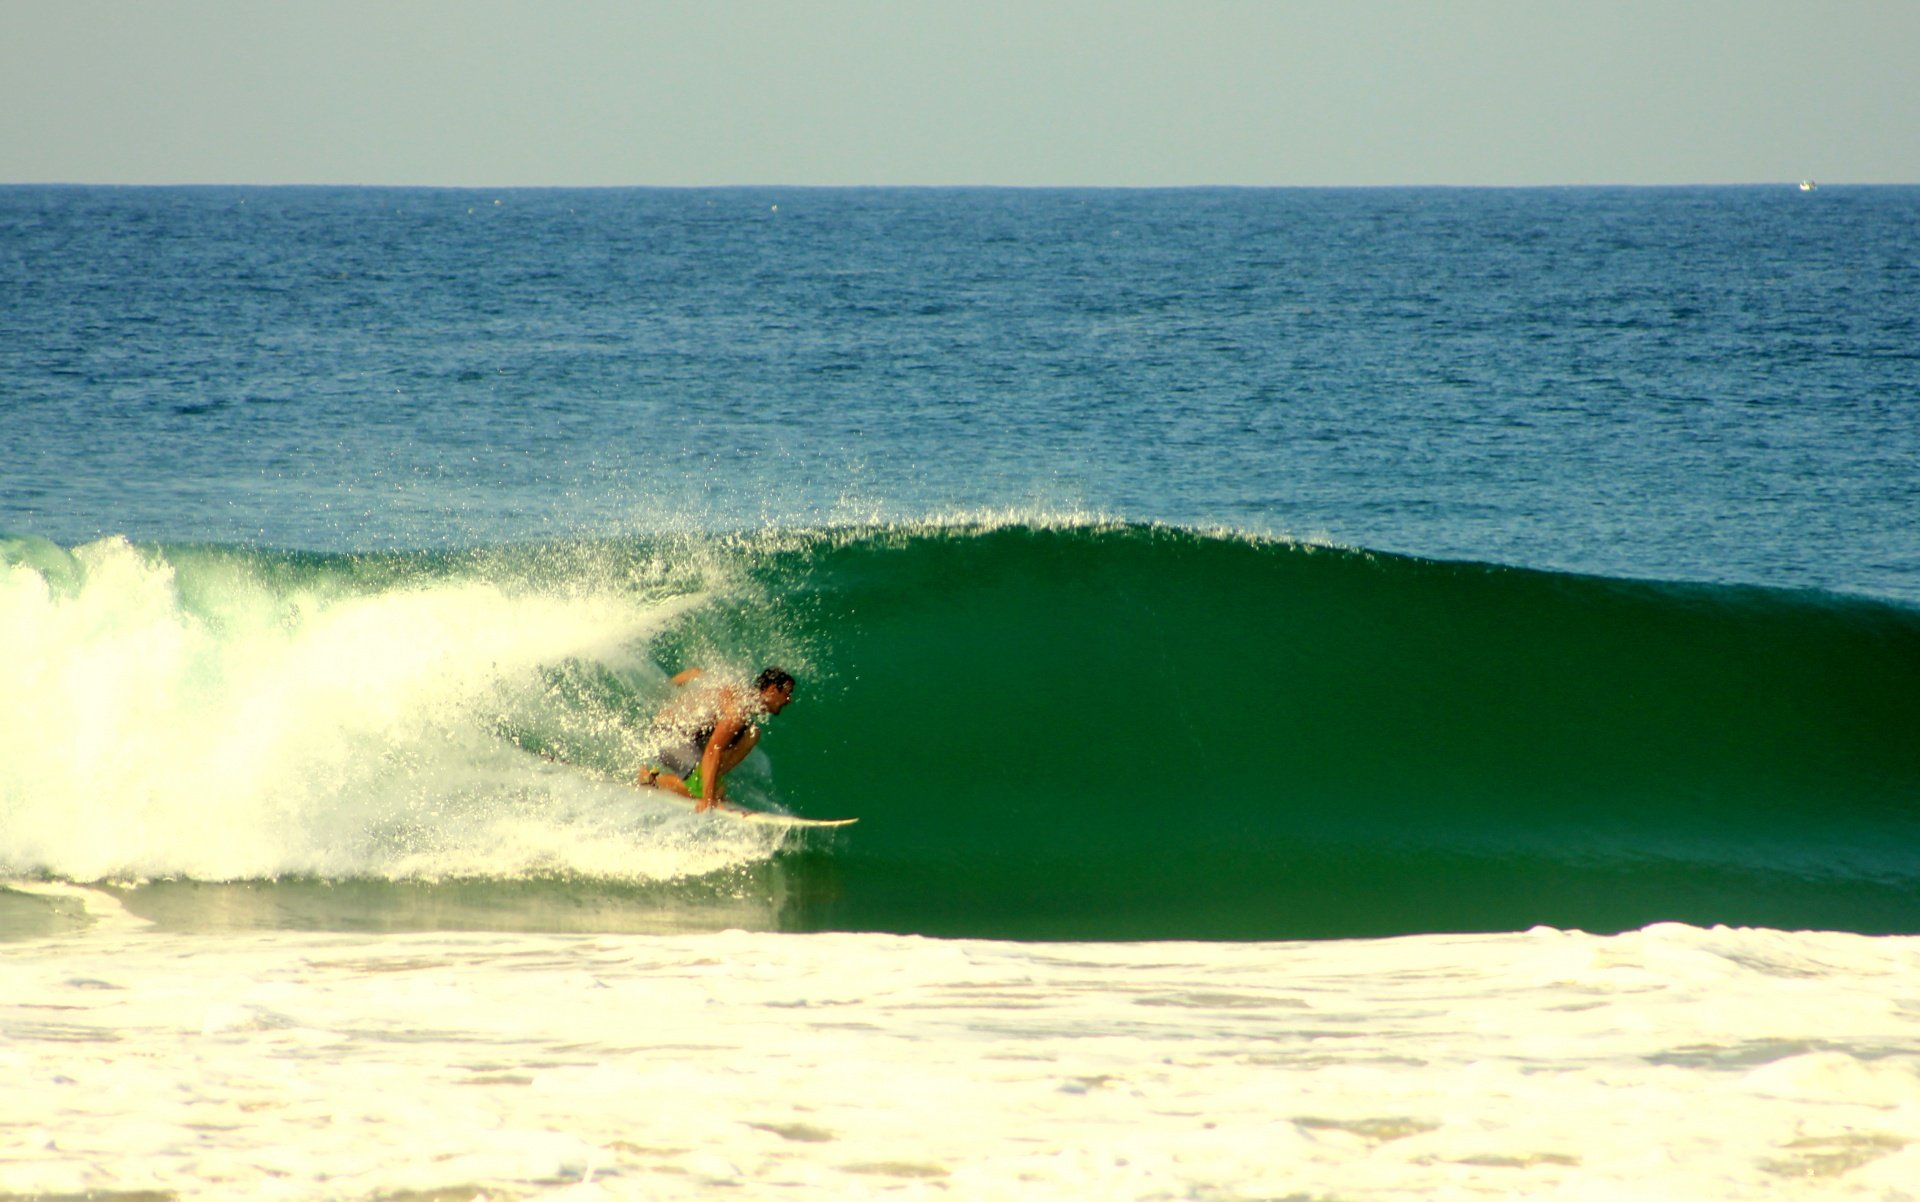 Gazza  Milla's photo of Puerto Escondido